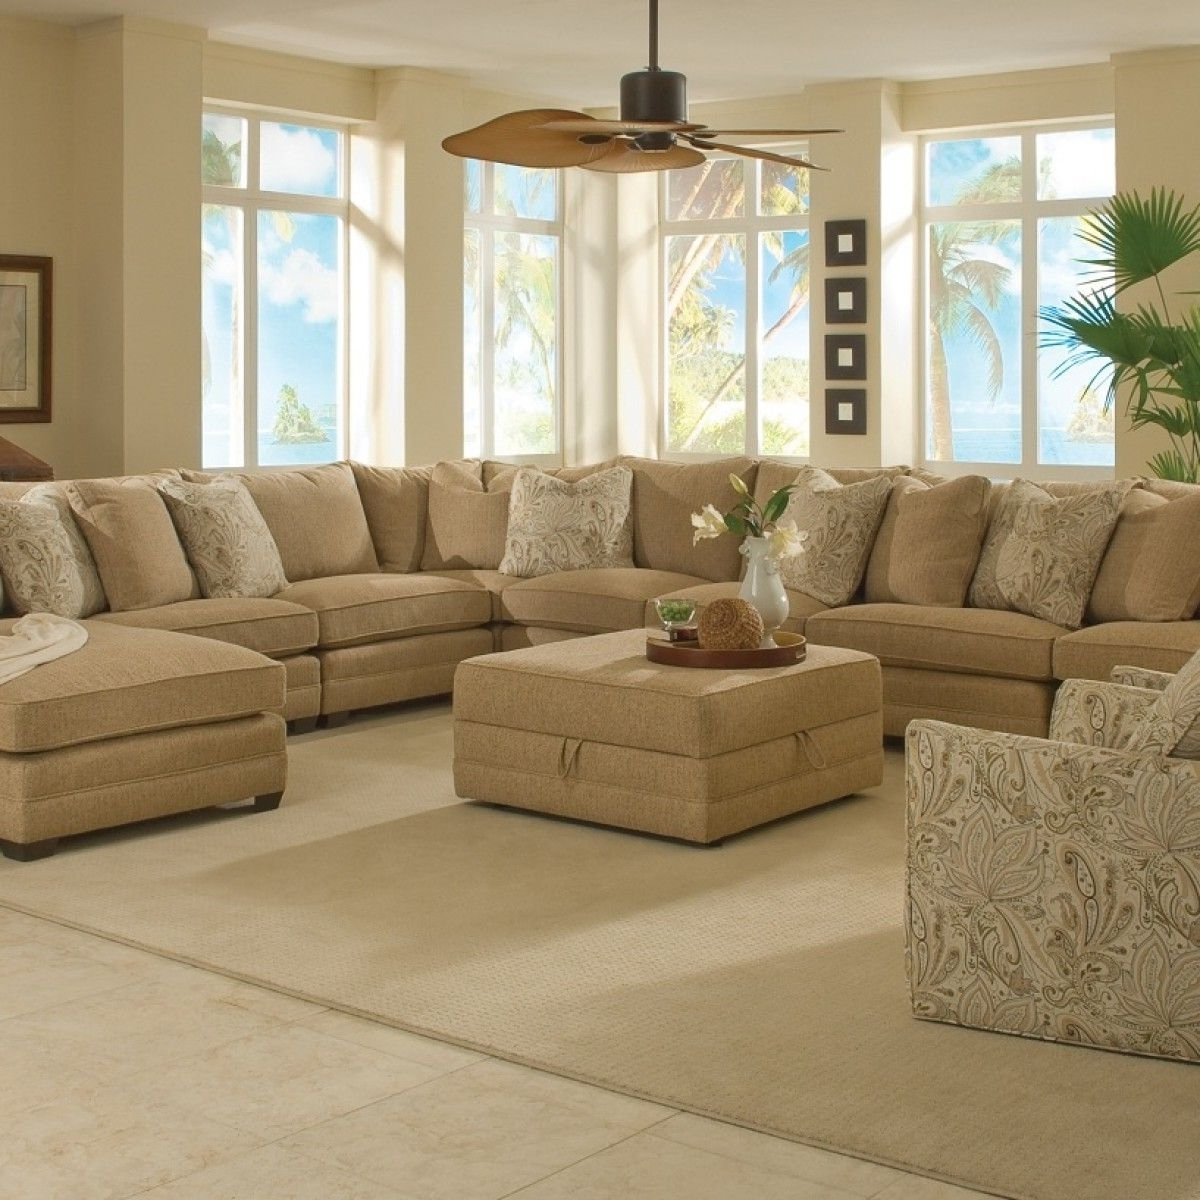 Large Sectionals With Chaise Intended For Preferred Magnificent Large Sectional Sofas (View 3 of 15)